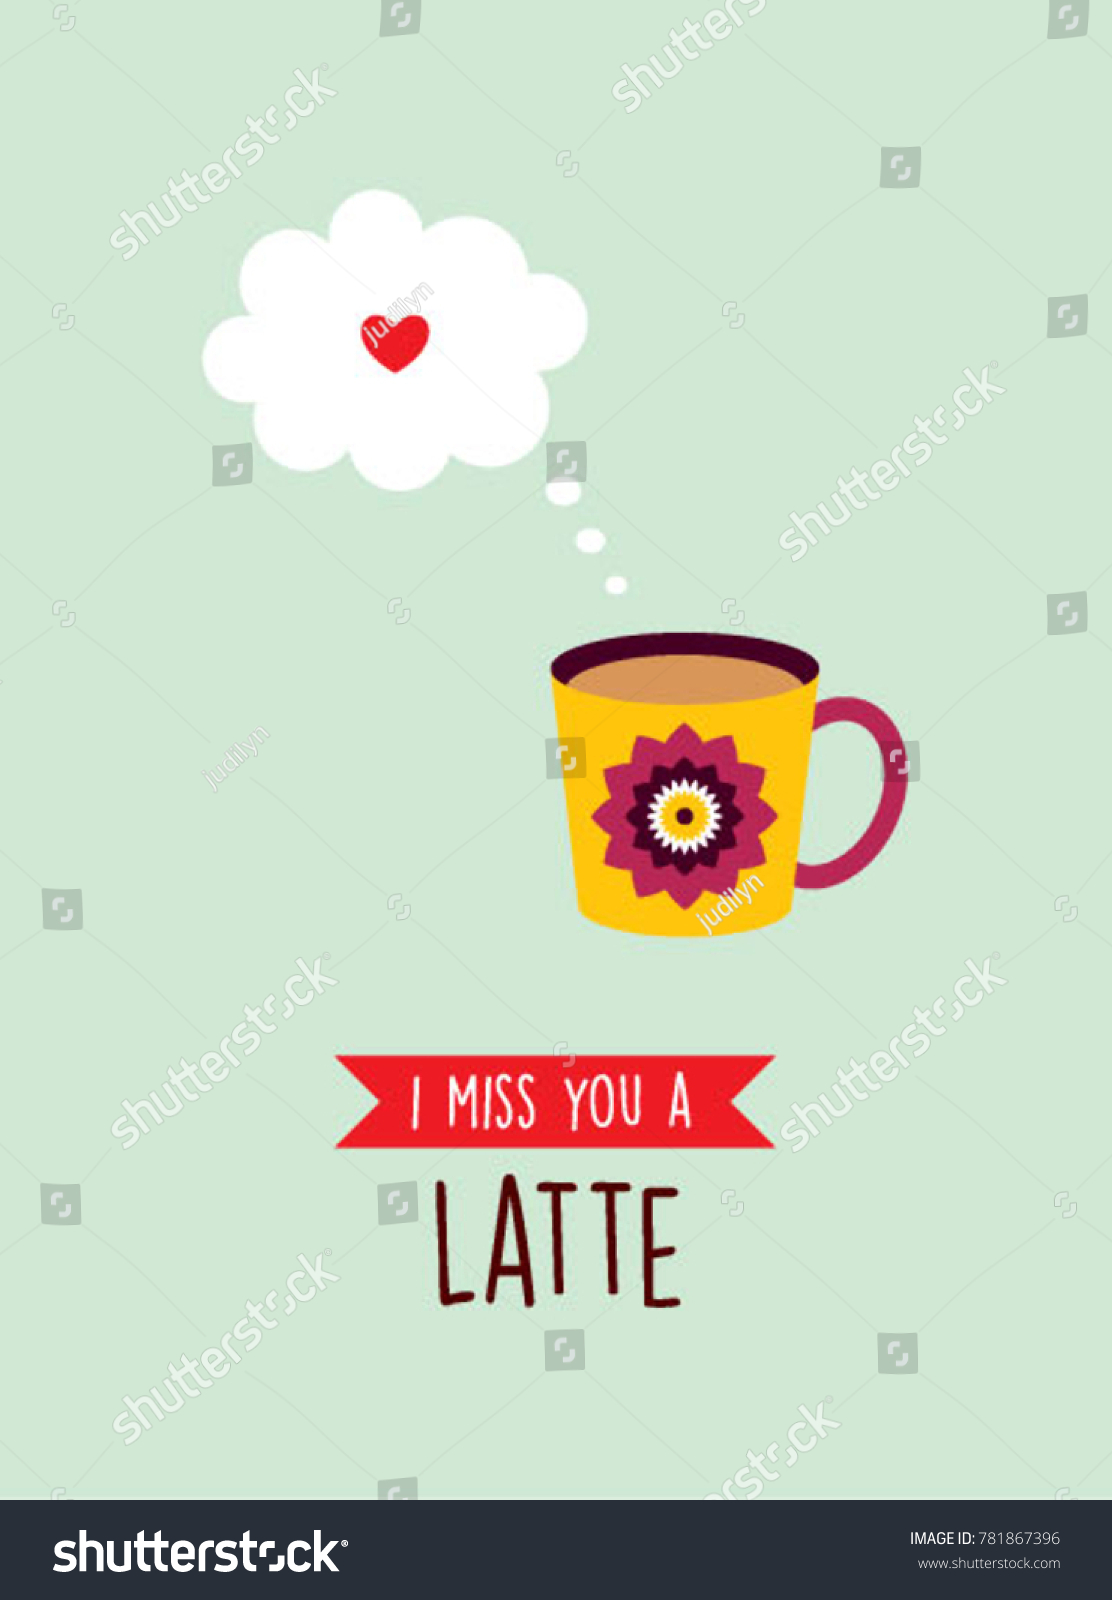 Miss you greeting card cup graphic stock vector 781867396 i miss you greeting card with cup graphic kristyandbryce Image collections